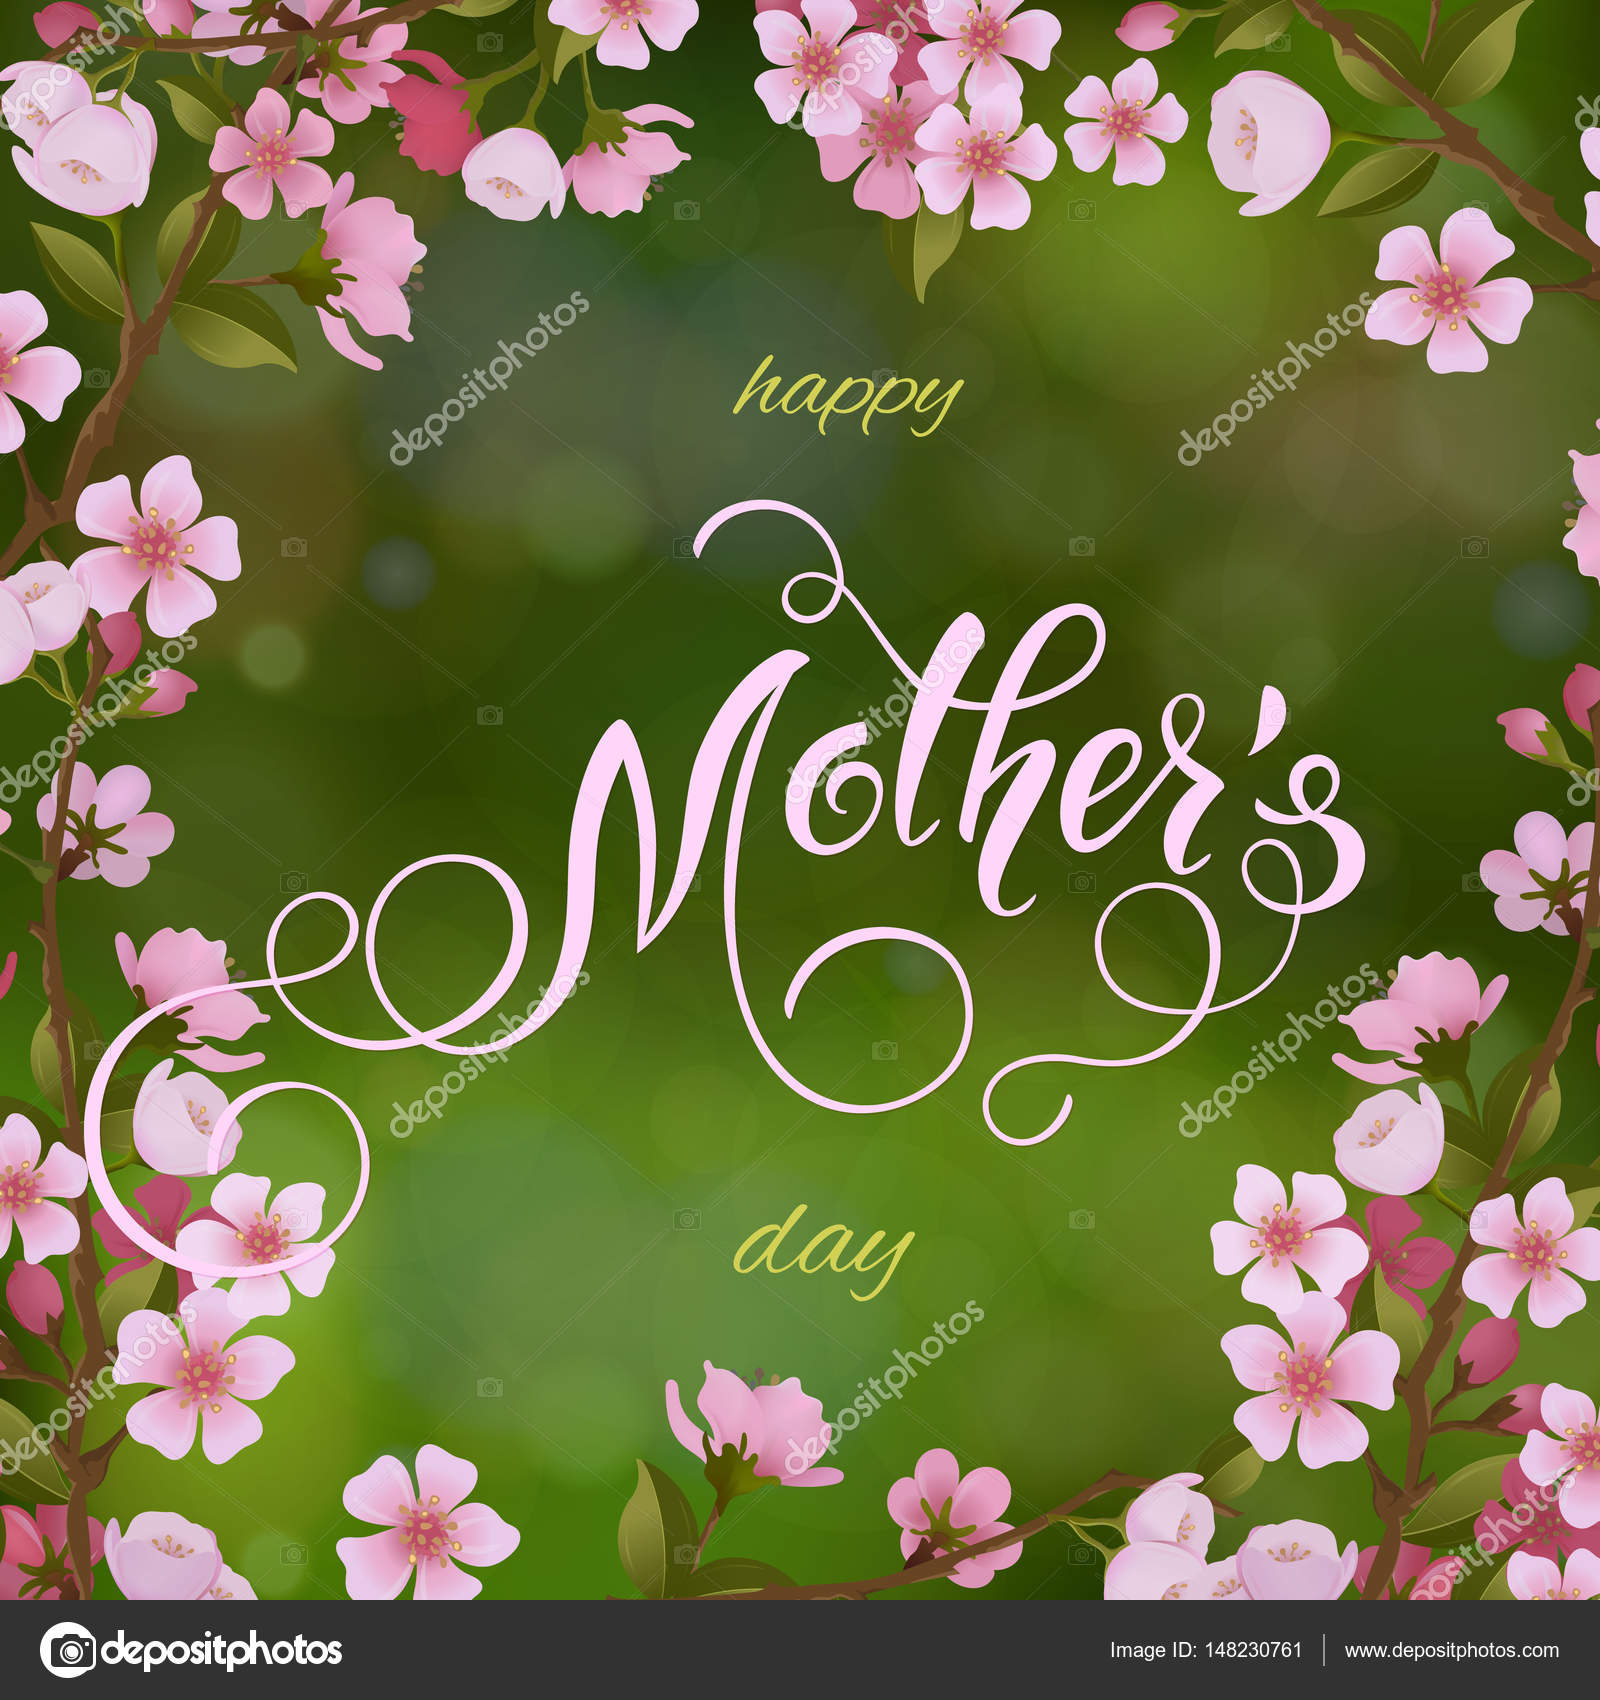 mothers day background.html